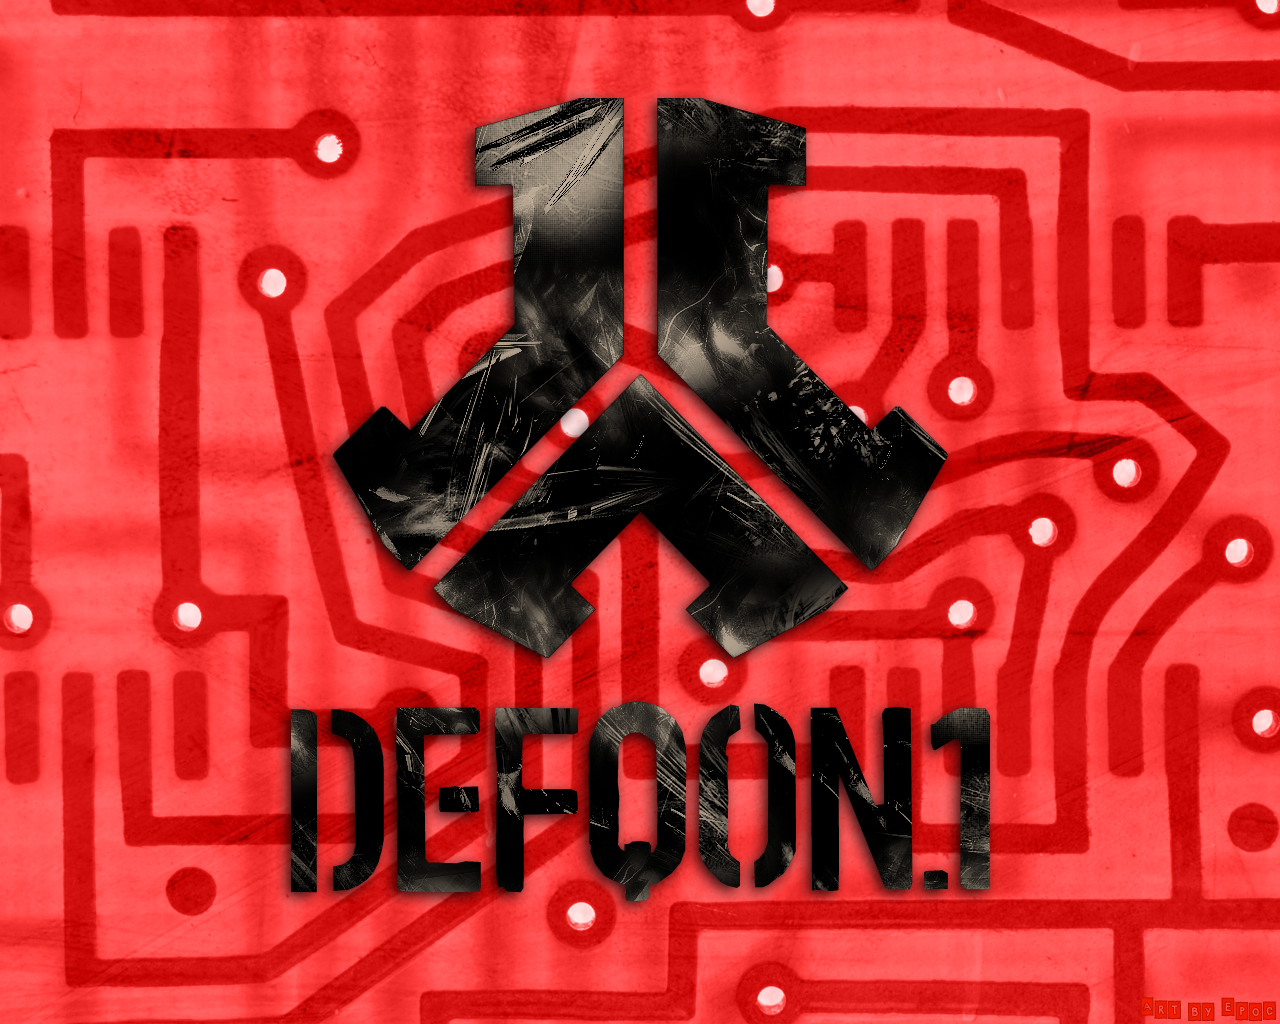 Defqon1 wallpaper by Epoc22 1280x1024